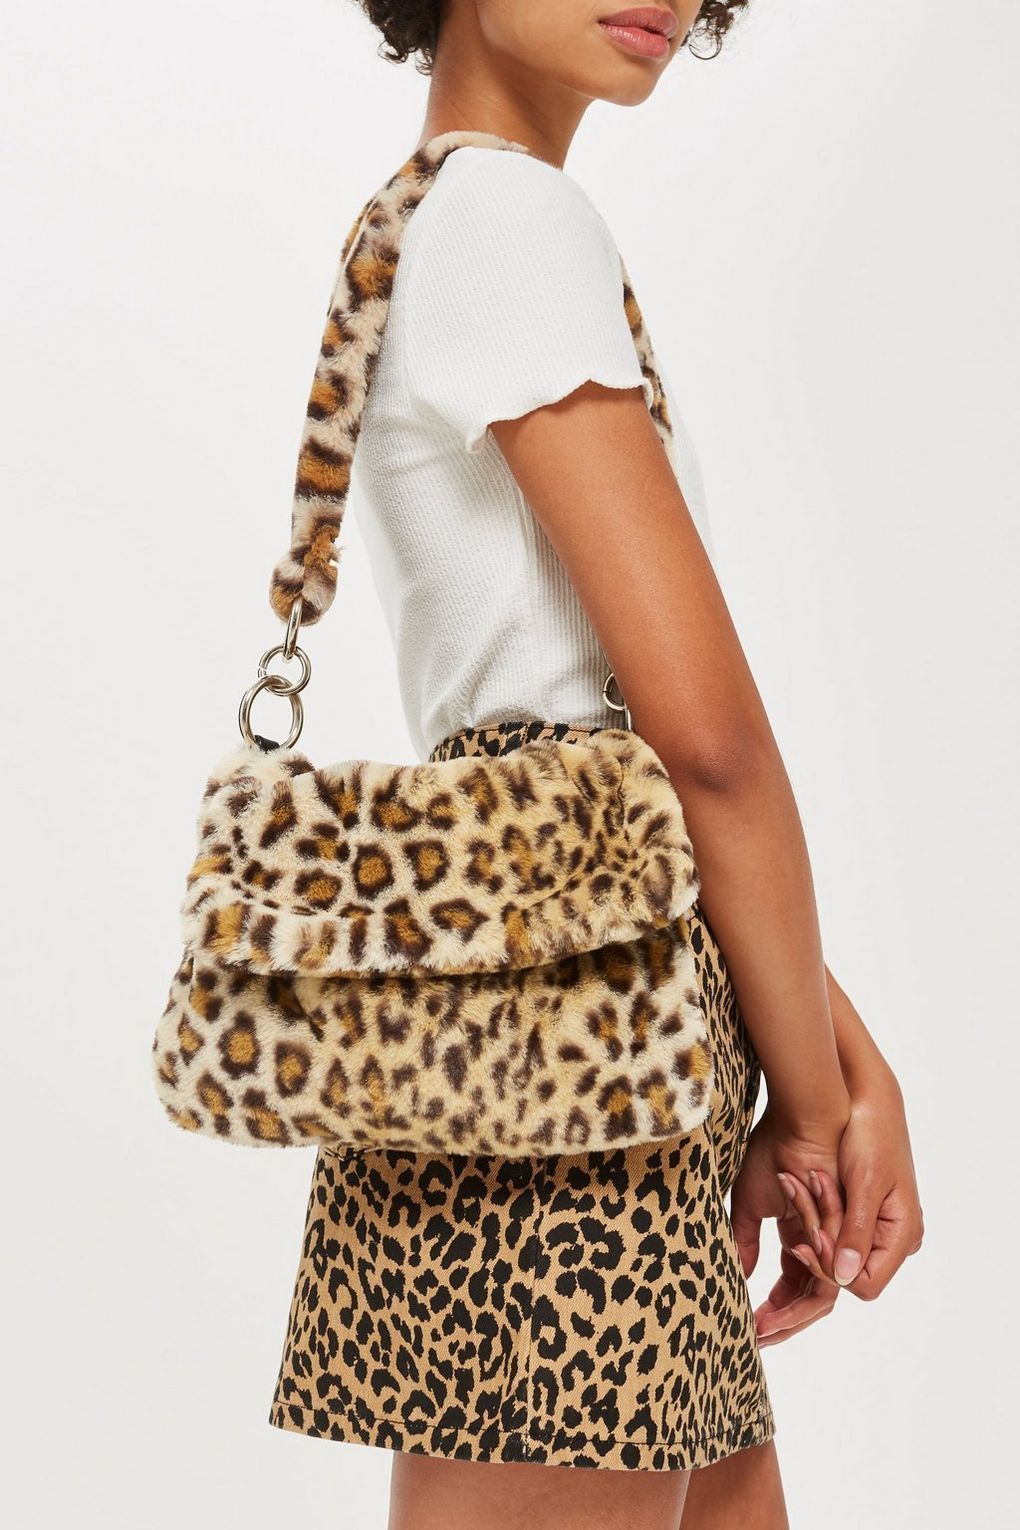 fed4e3164a Leopard Print Teddy Faux Fur Shoulder Bag - Bags   Wallets - Bags    Accessories - Topshop USA